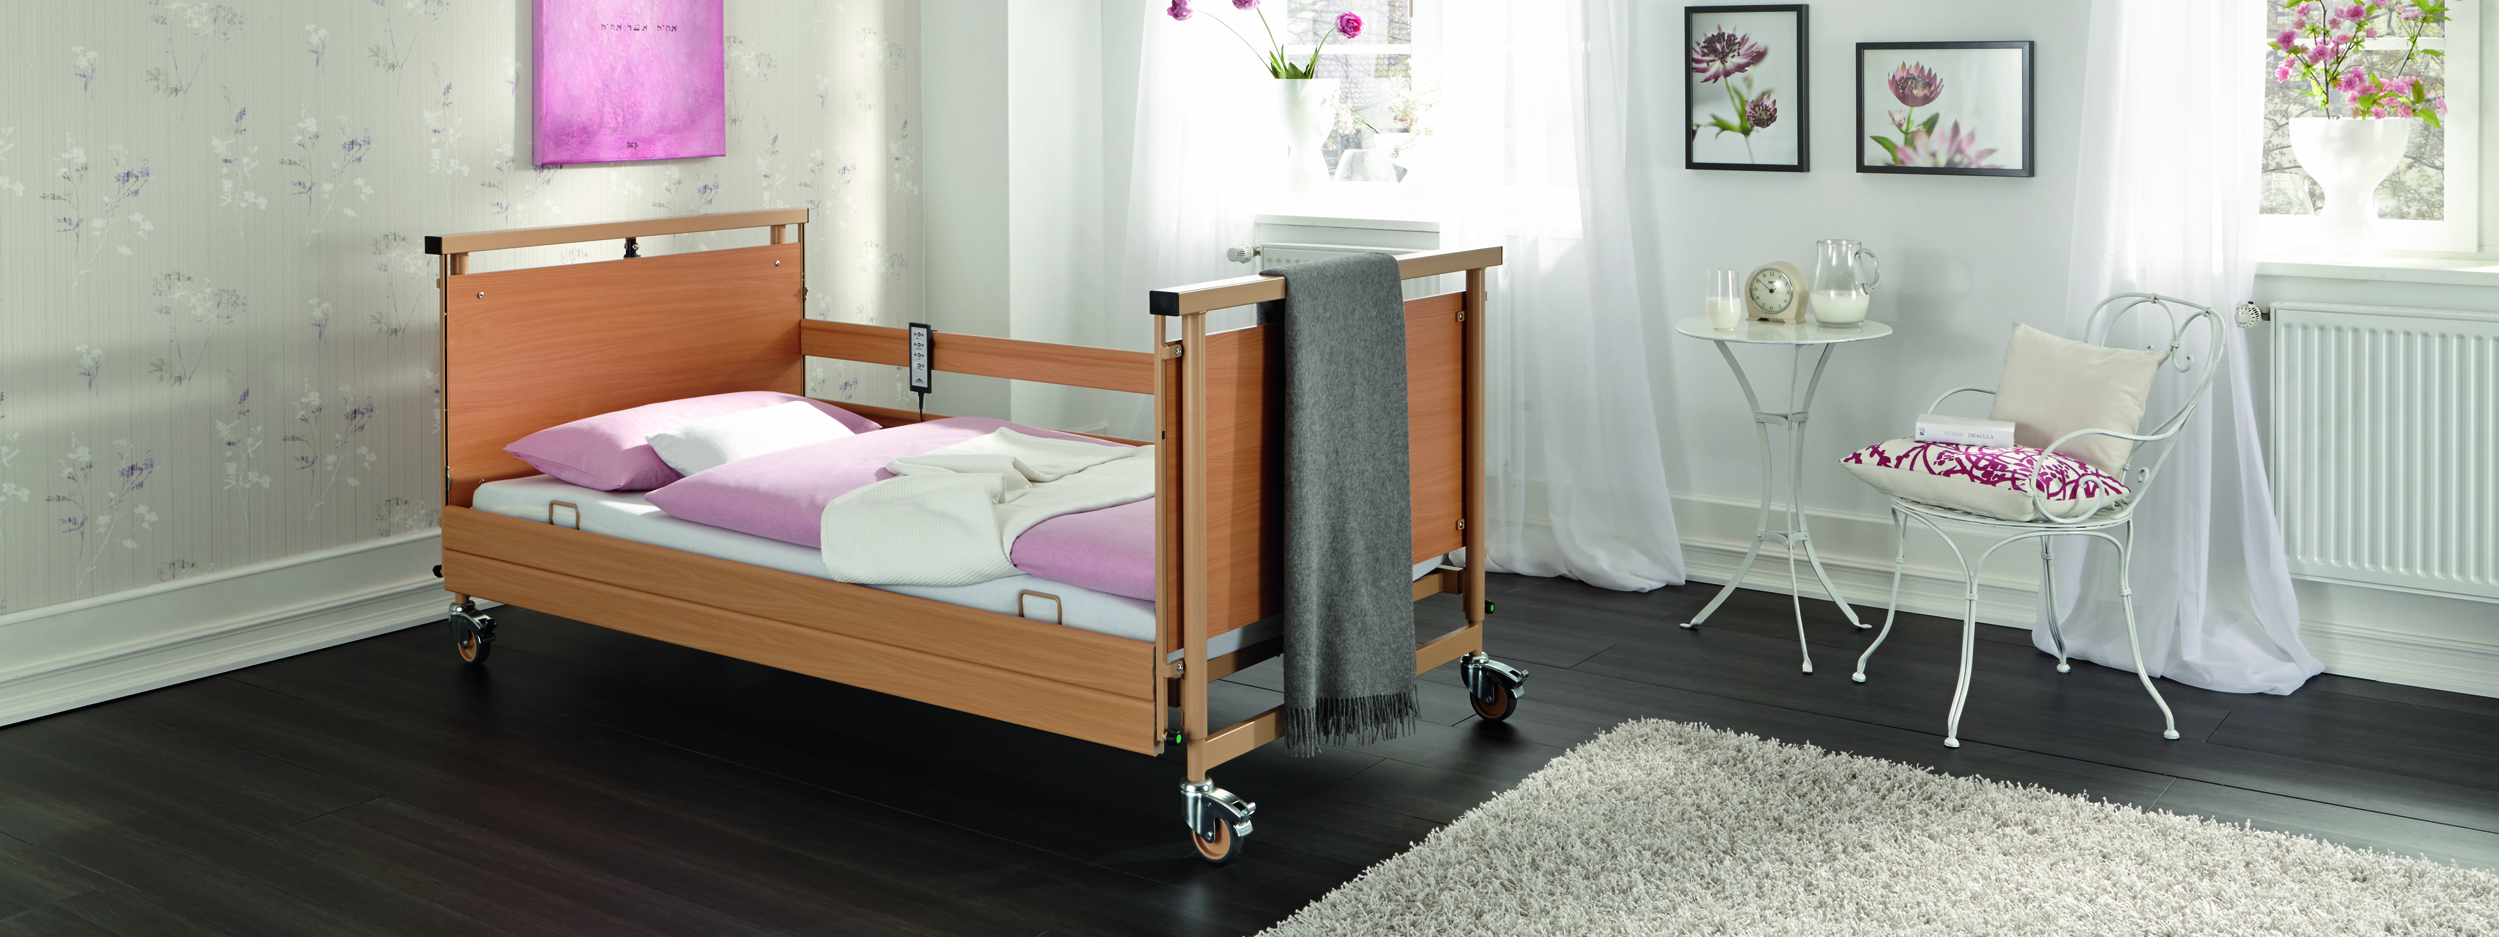 Fall prevention with the Allura II care bed